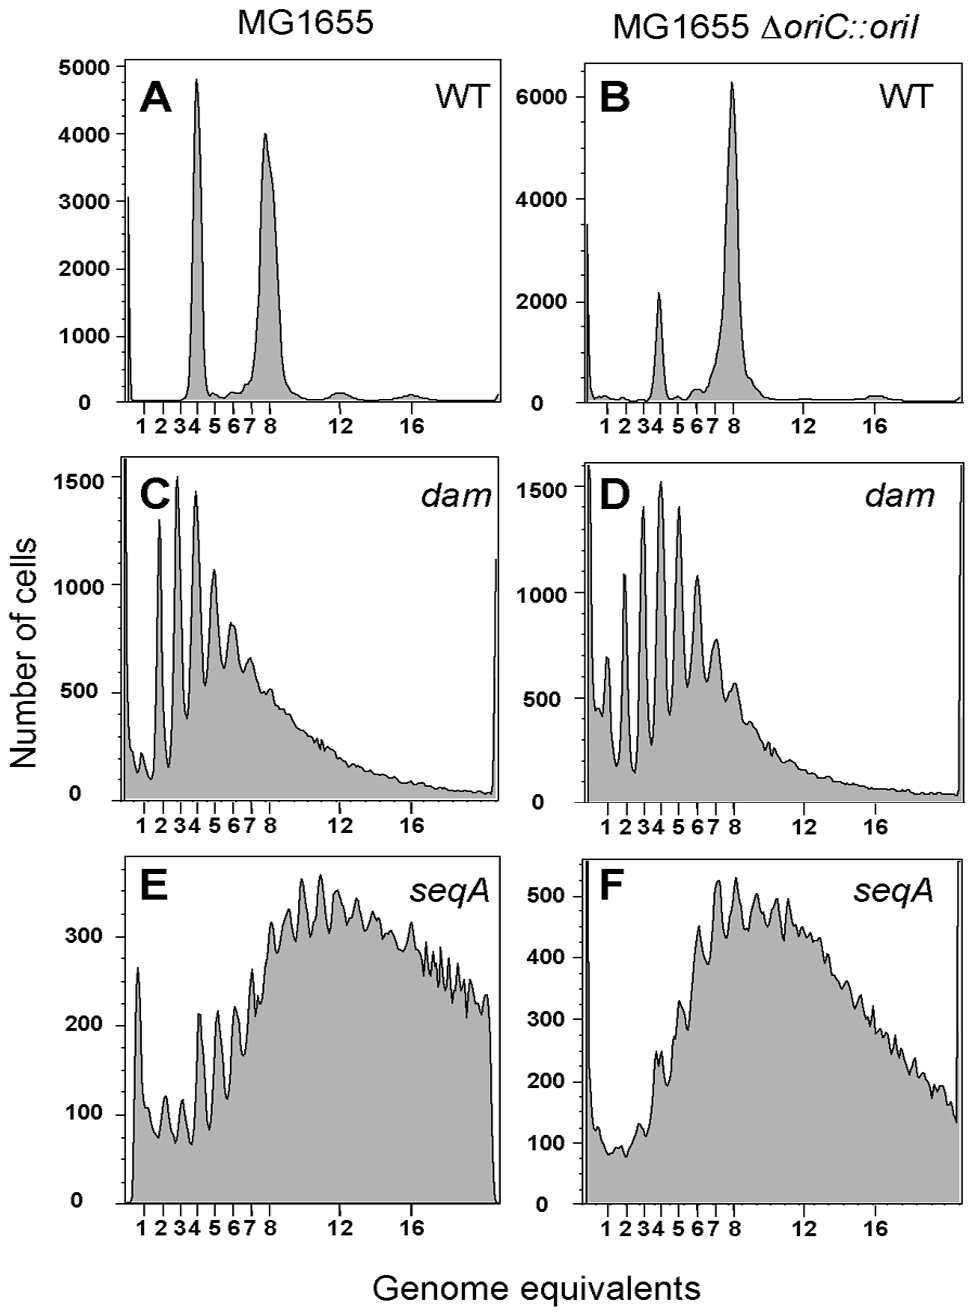 Flow cytometric analysis of DNA content in <i>E. coli</i>.